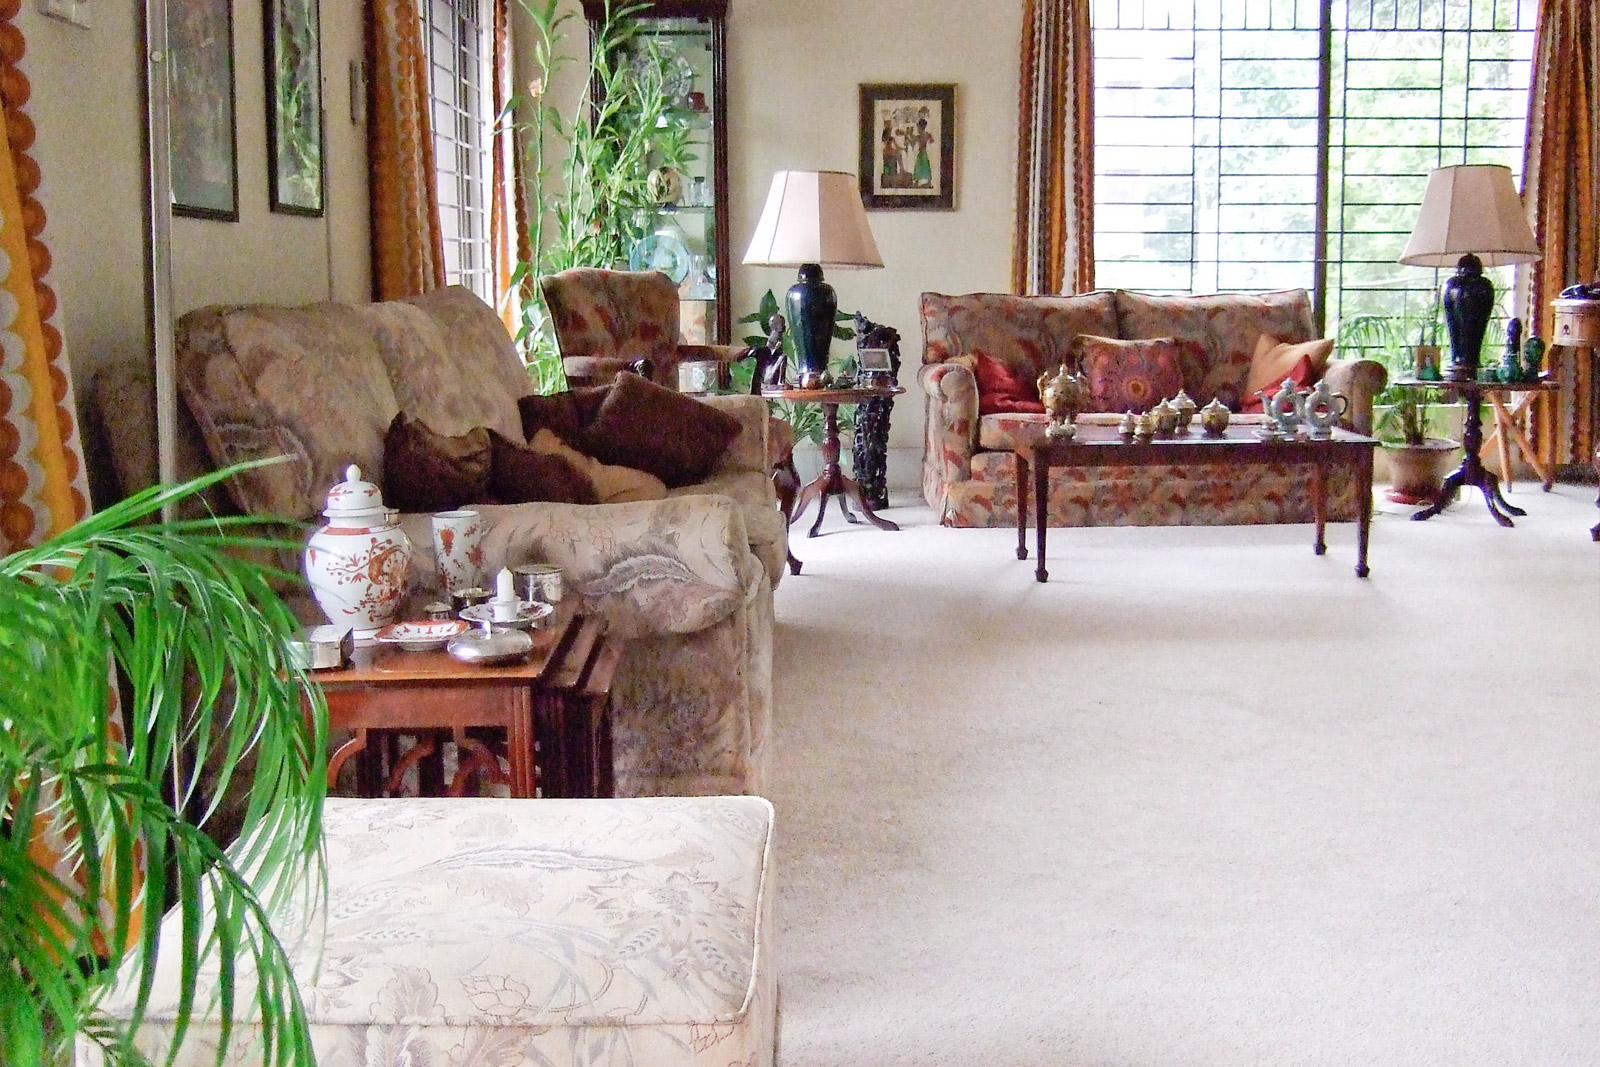 Our living room in Dhaka, Bangladesh. My dad would like to sit on the sofa here and read the papers in the mornings.